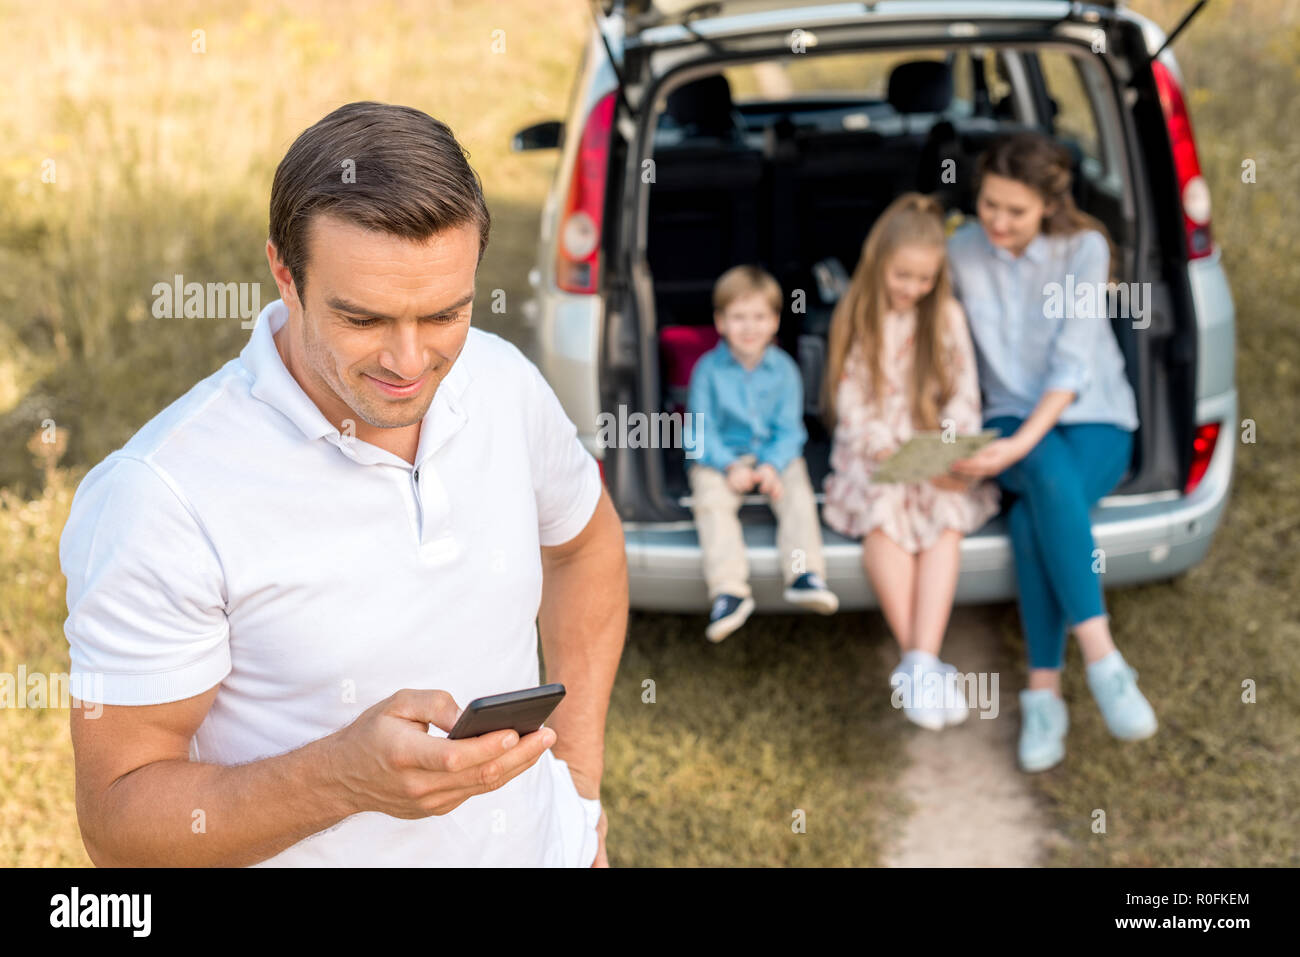 happy man using smartphone while his family sitting in car trunk in field - Stock Image